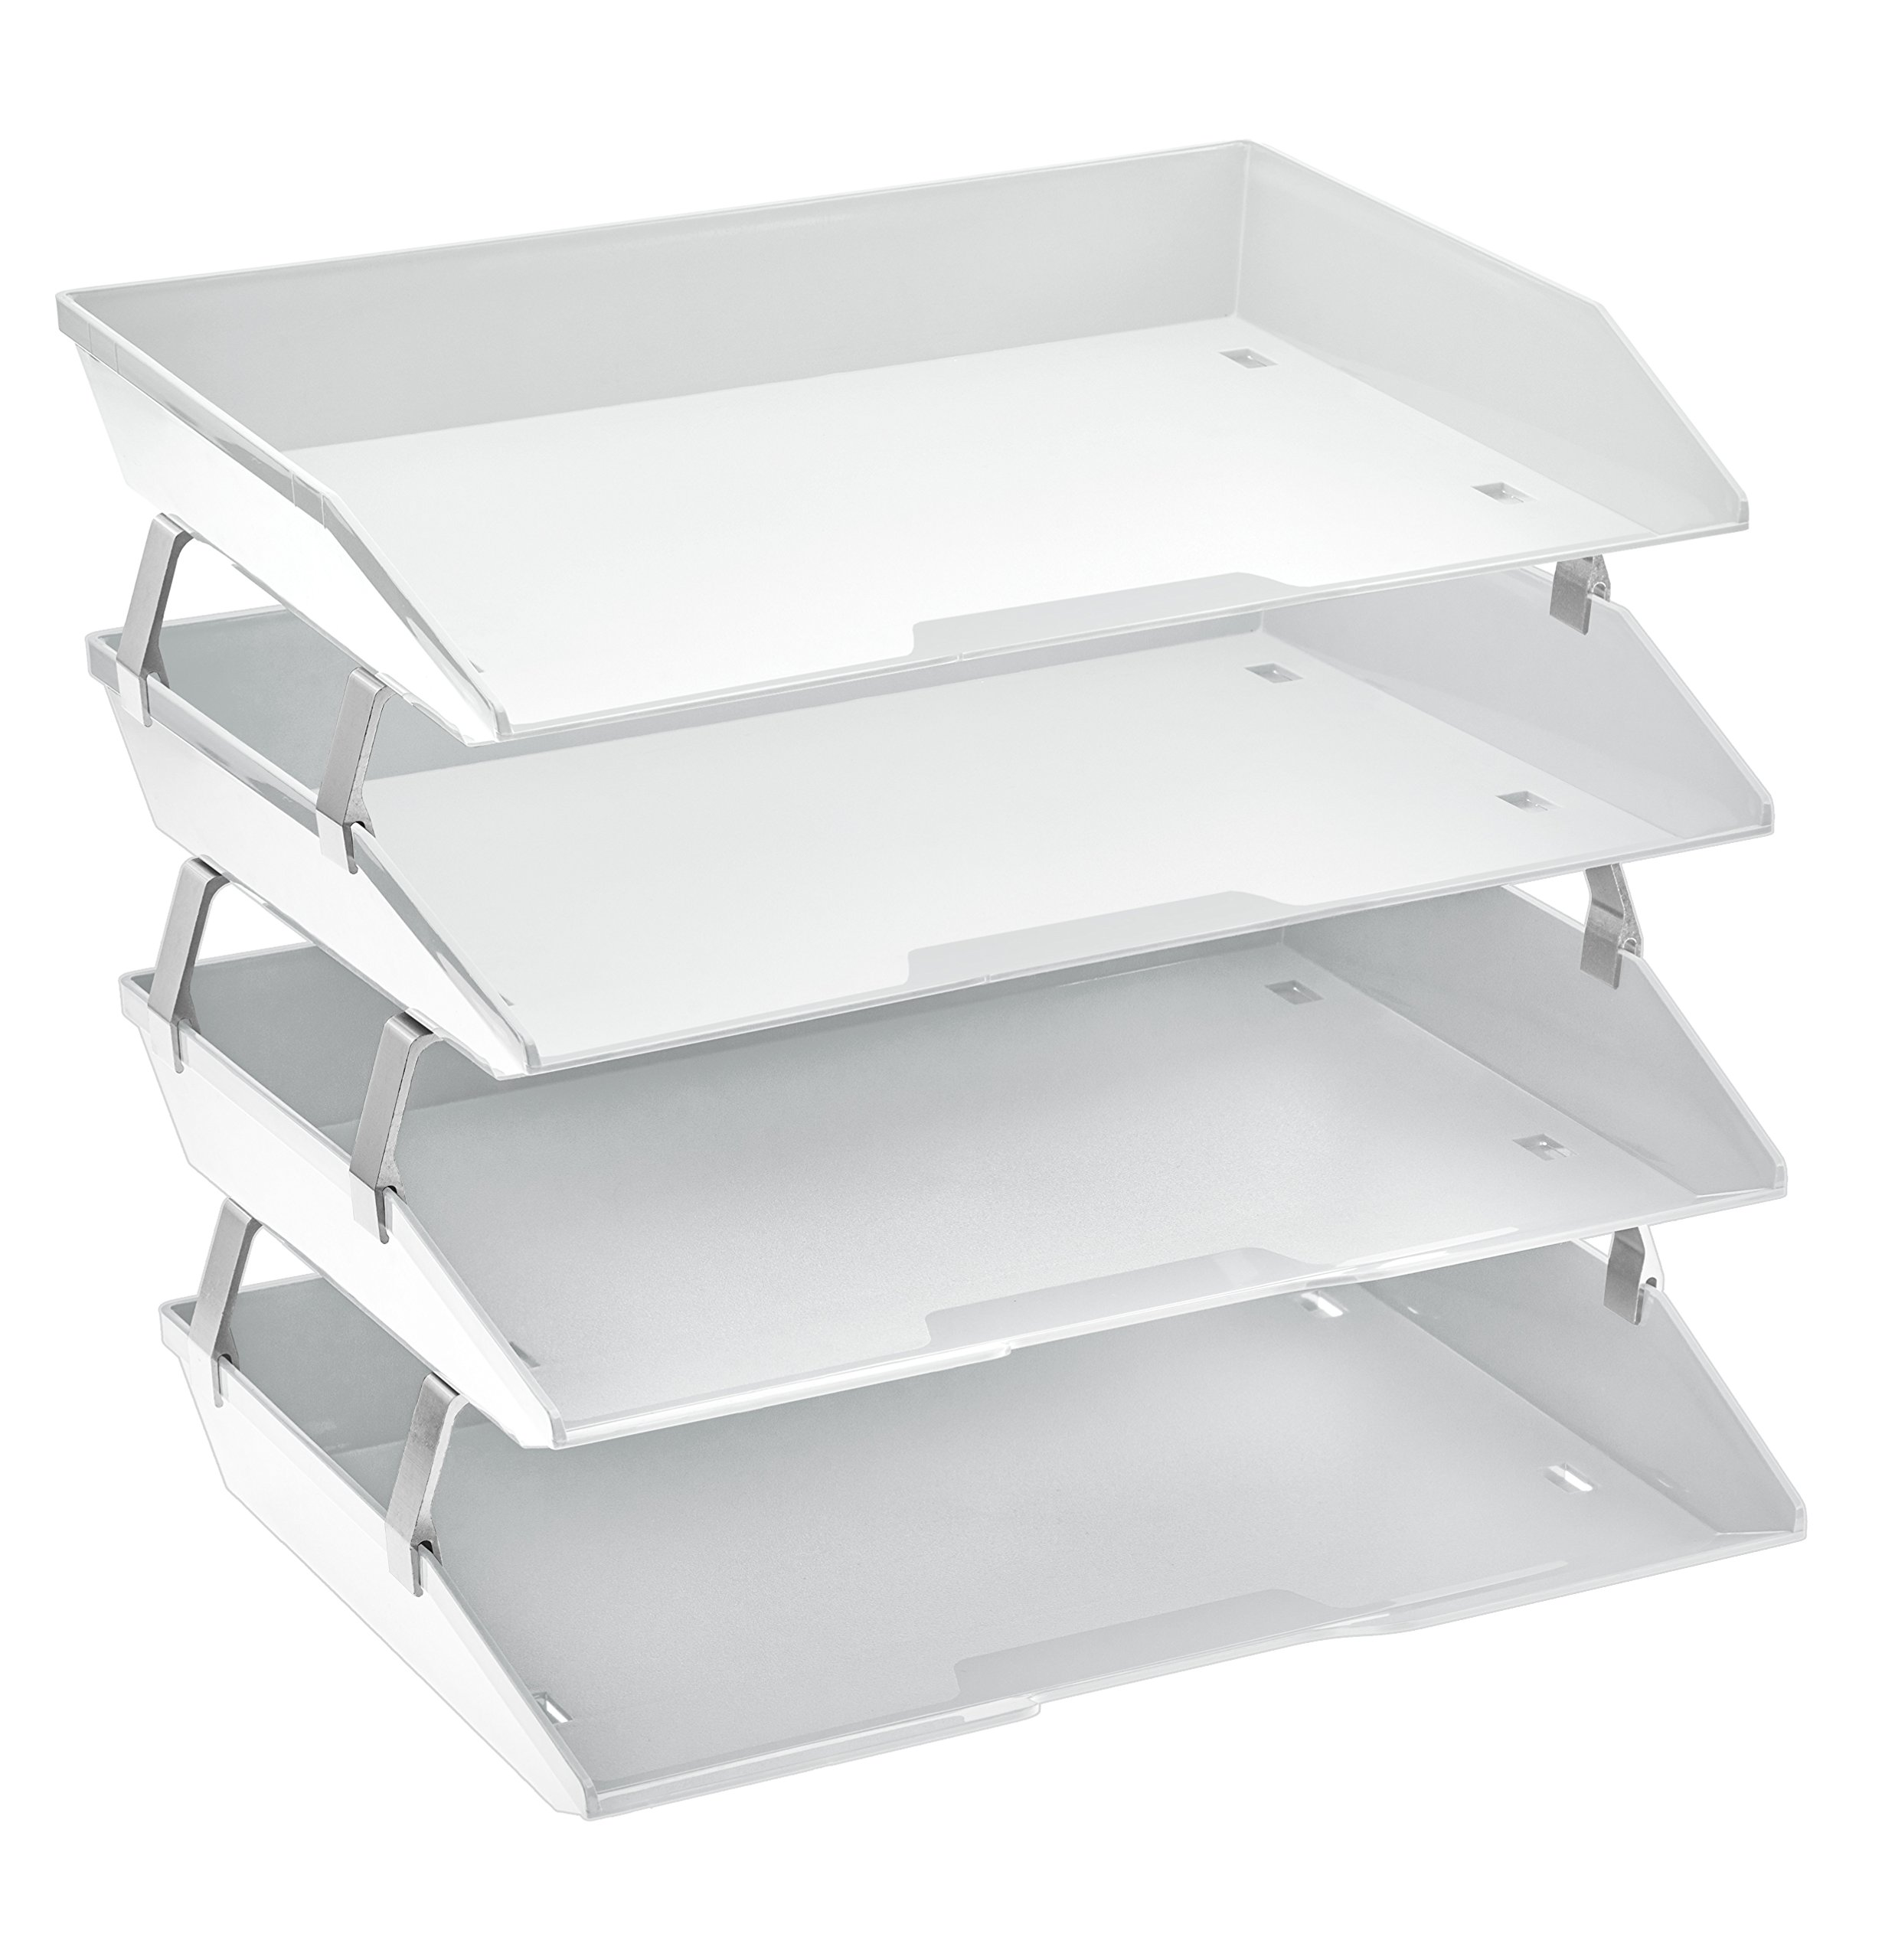 Acrimet Facility Letter Tray 4 Tiers (White Color)